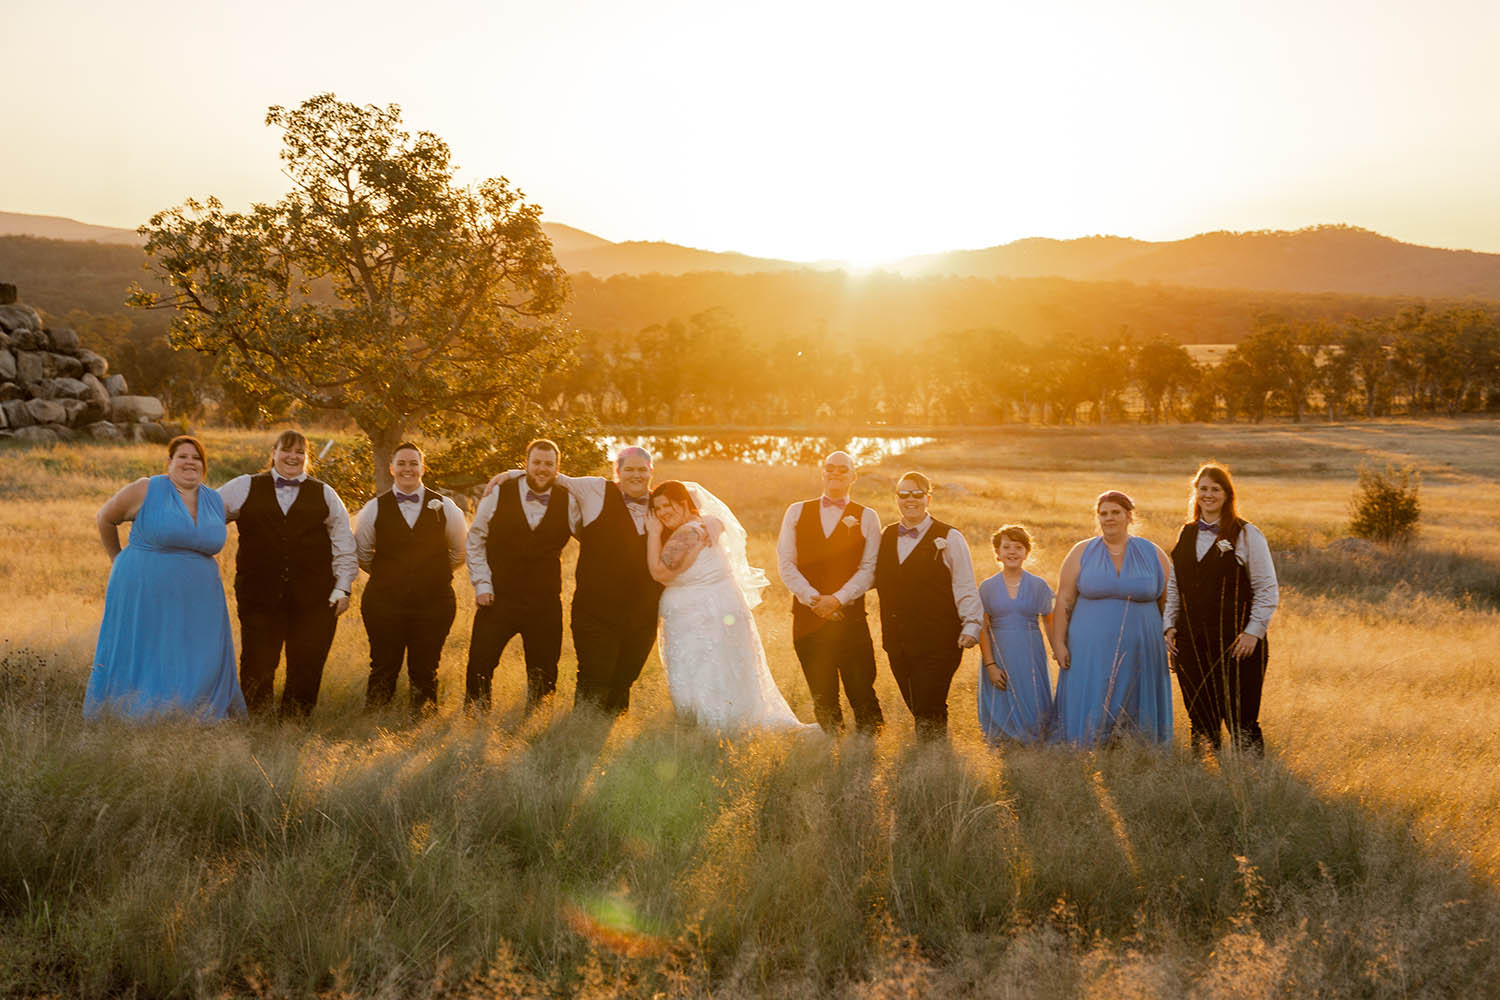 Wedding Photography - Bridal party at sunset